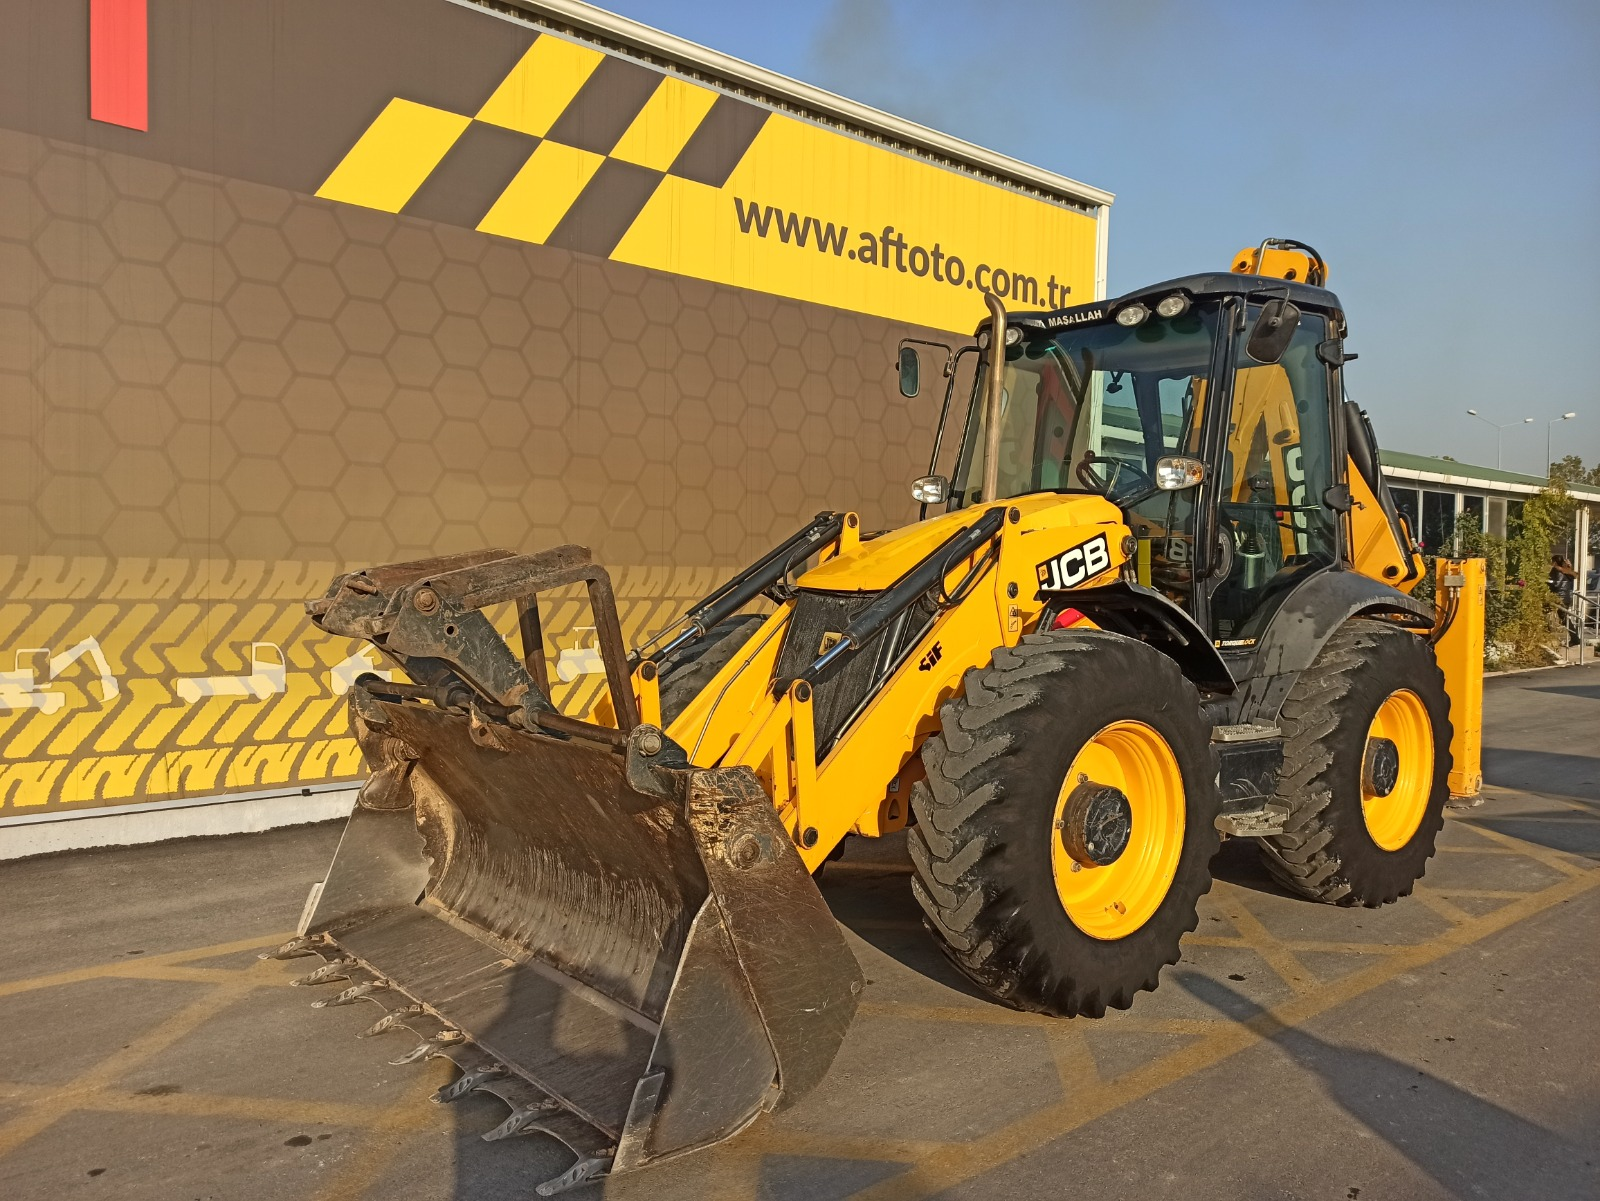 2016 MODEL JCB 4CX EXTENSIBLE BOOM BECKHOE LOADER